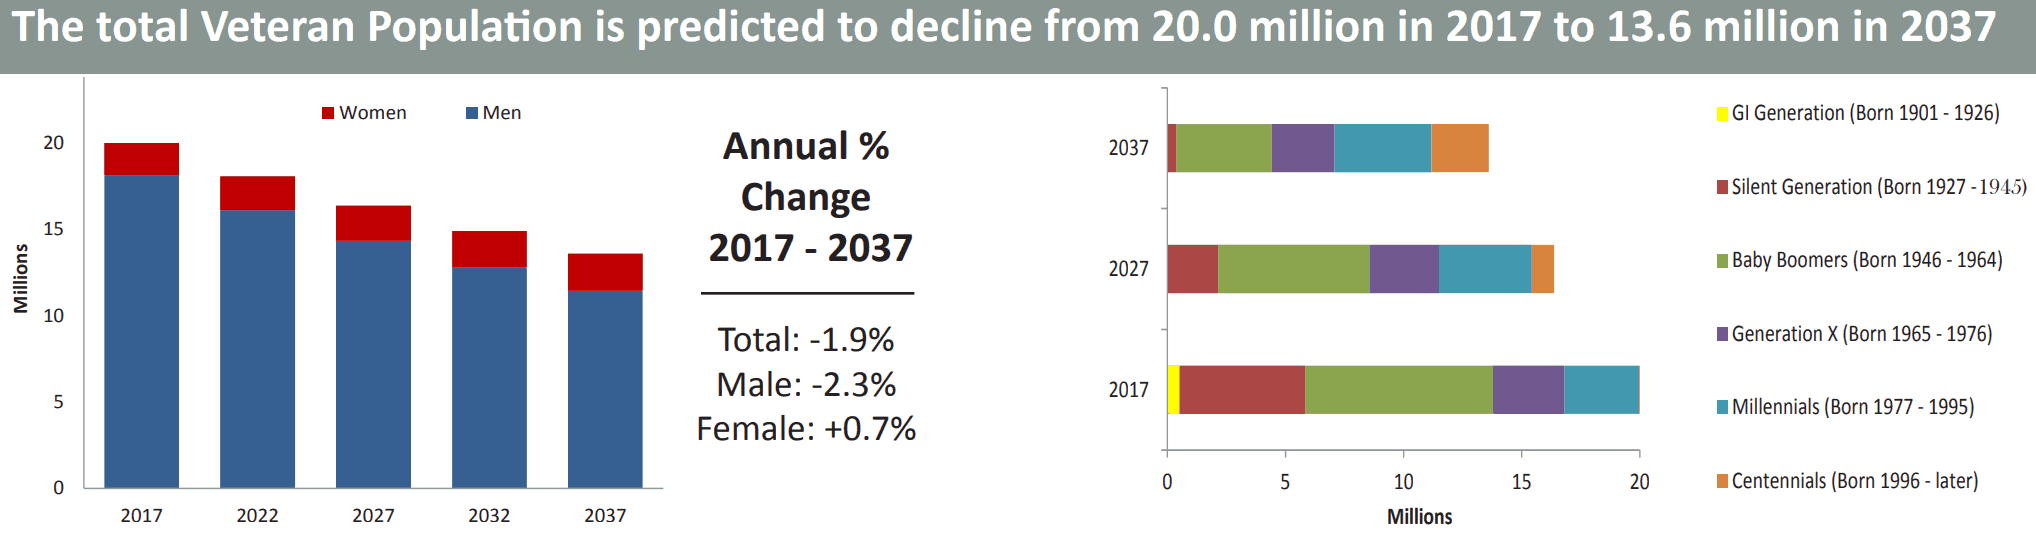 Total Veteran Population Decline from 2017 to 2037